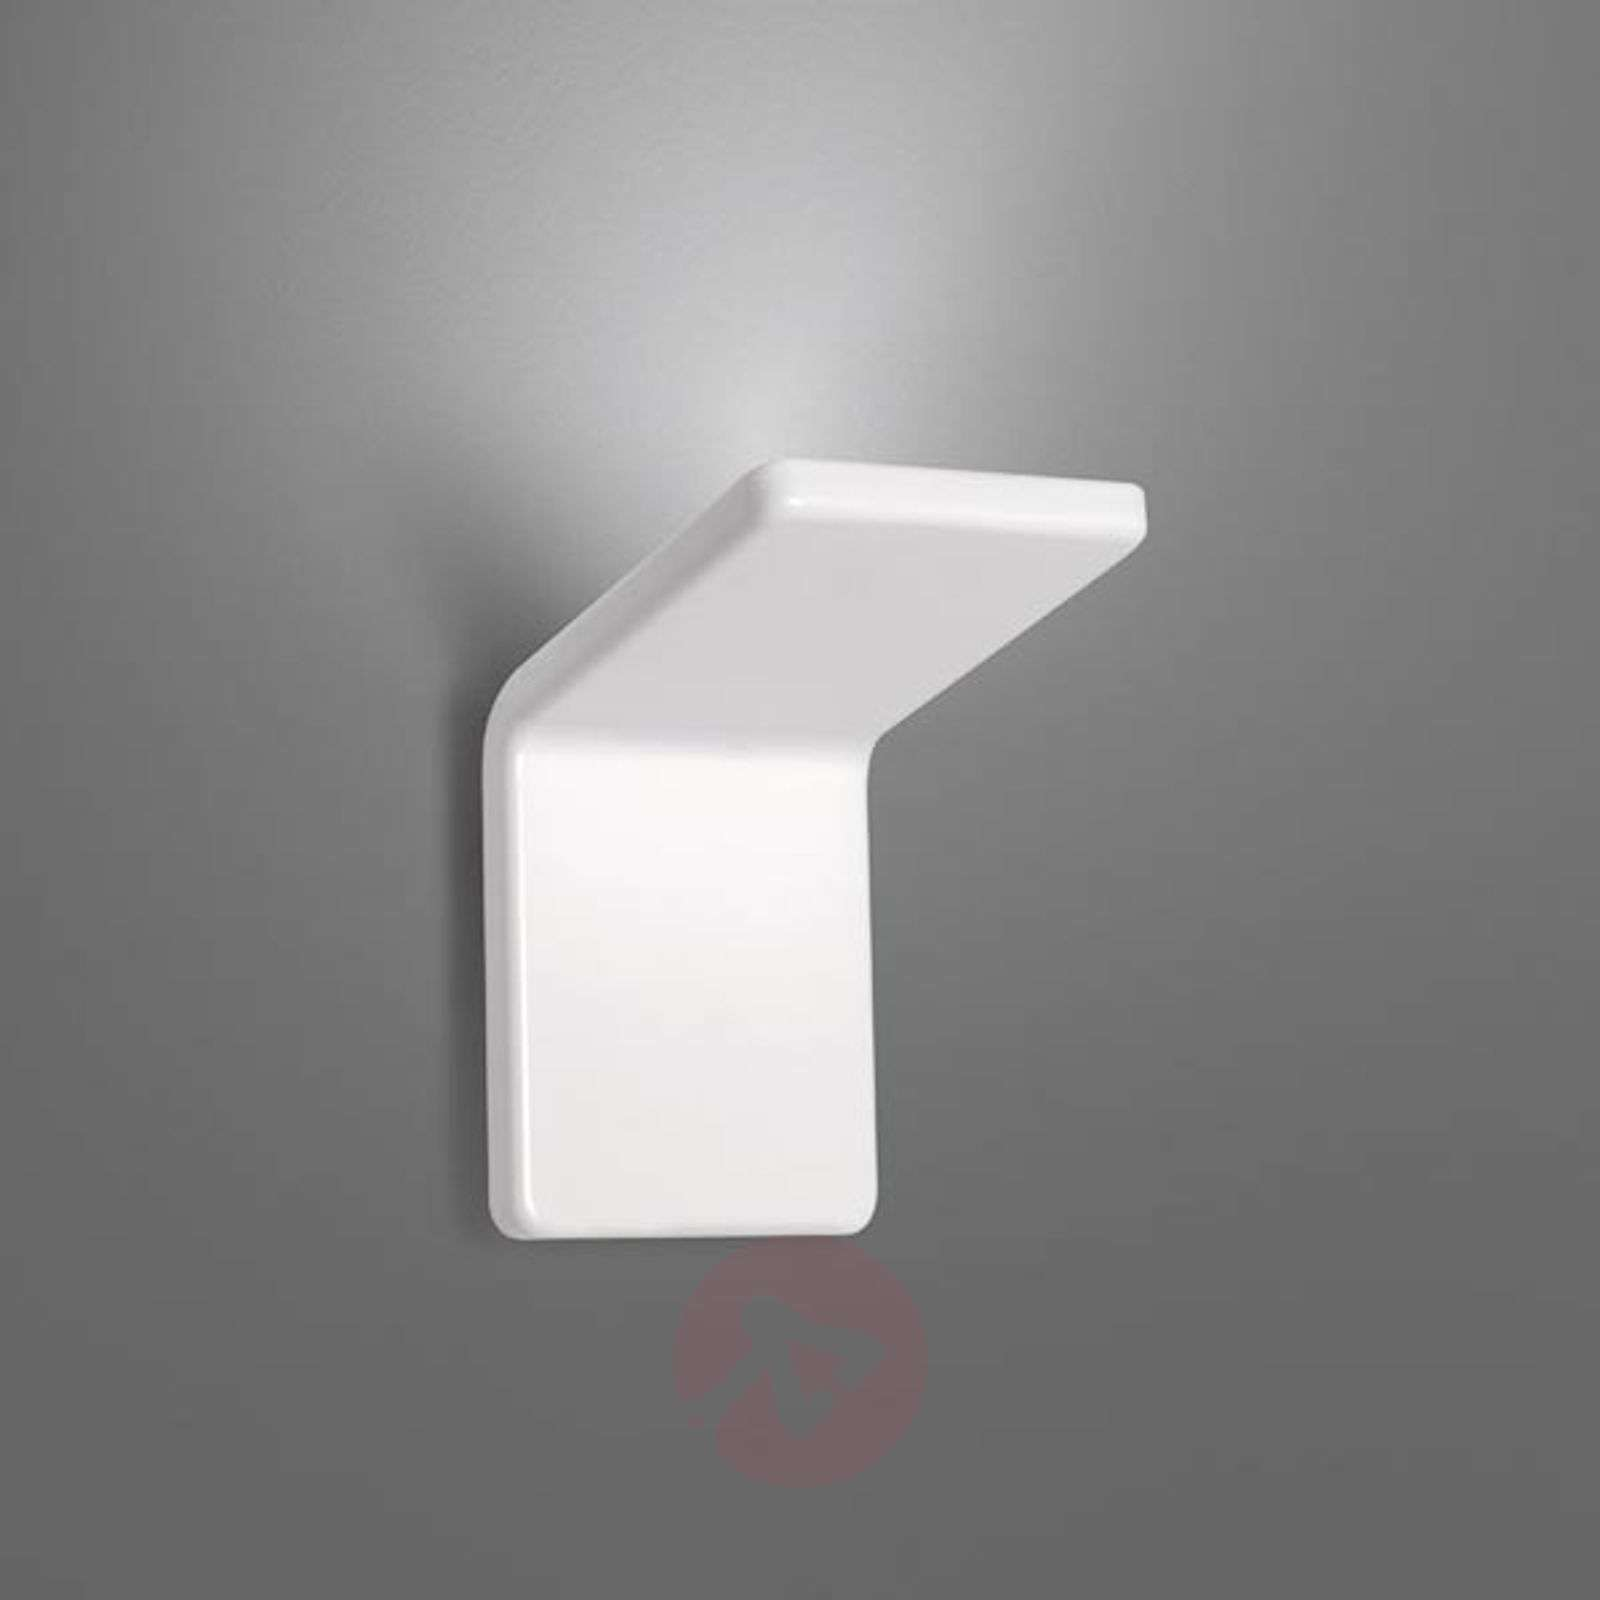 Acquista applique led di design cuma 10 bianca - Applique di design ...